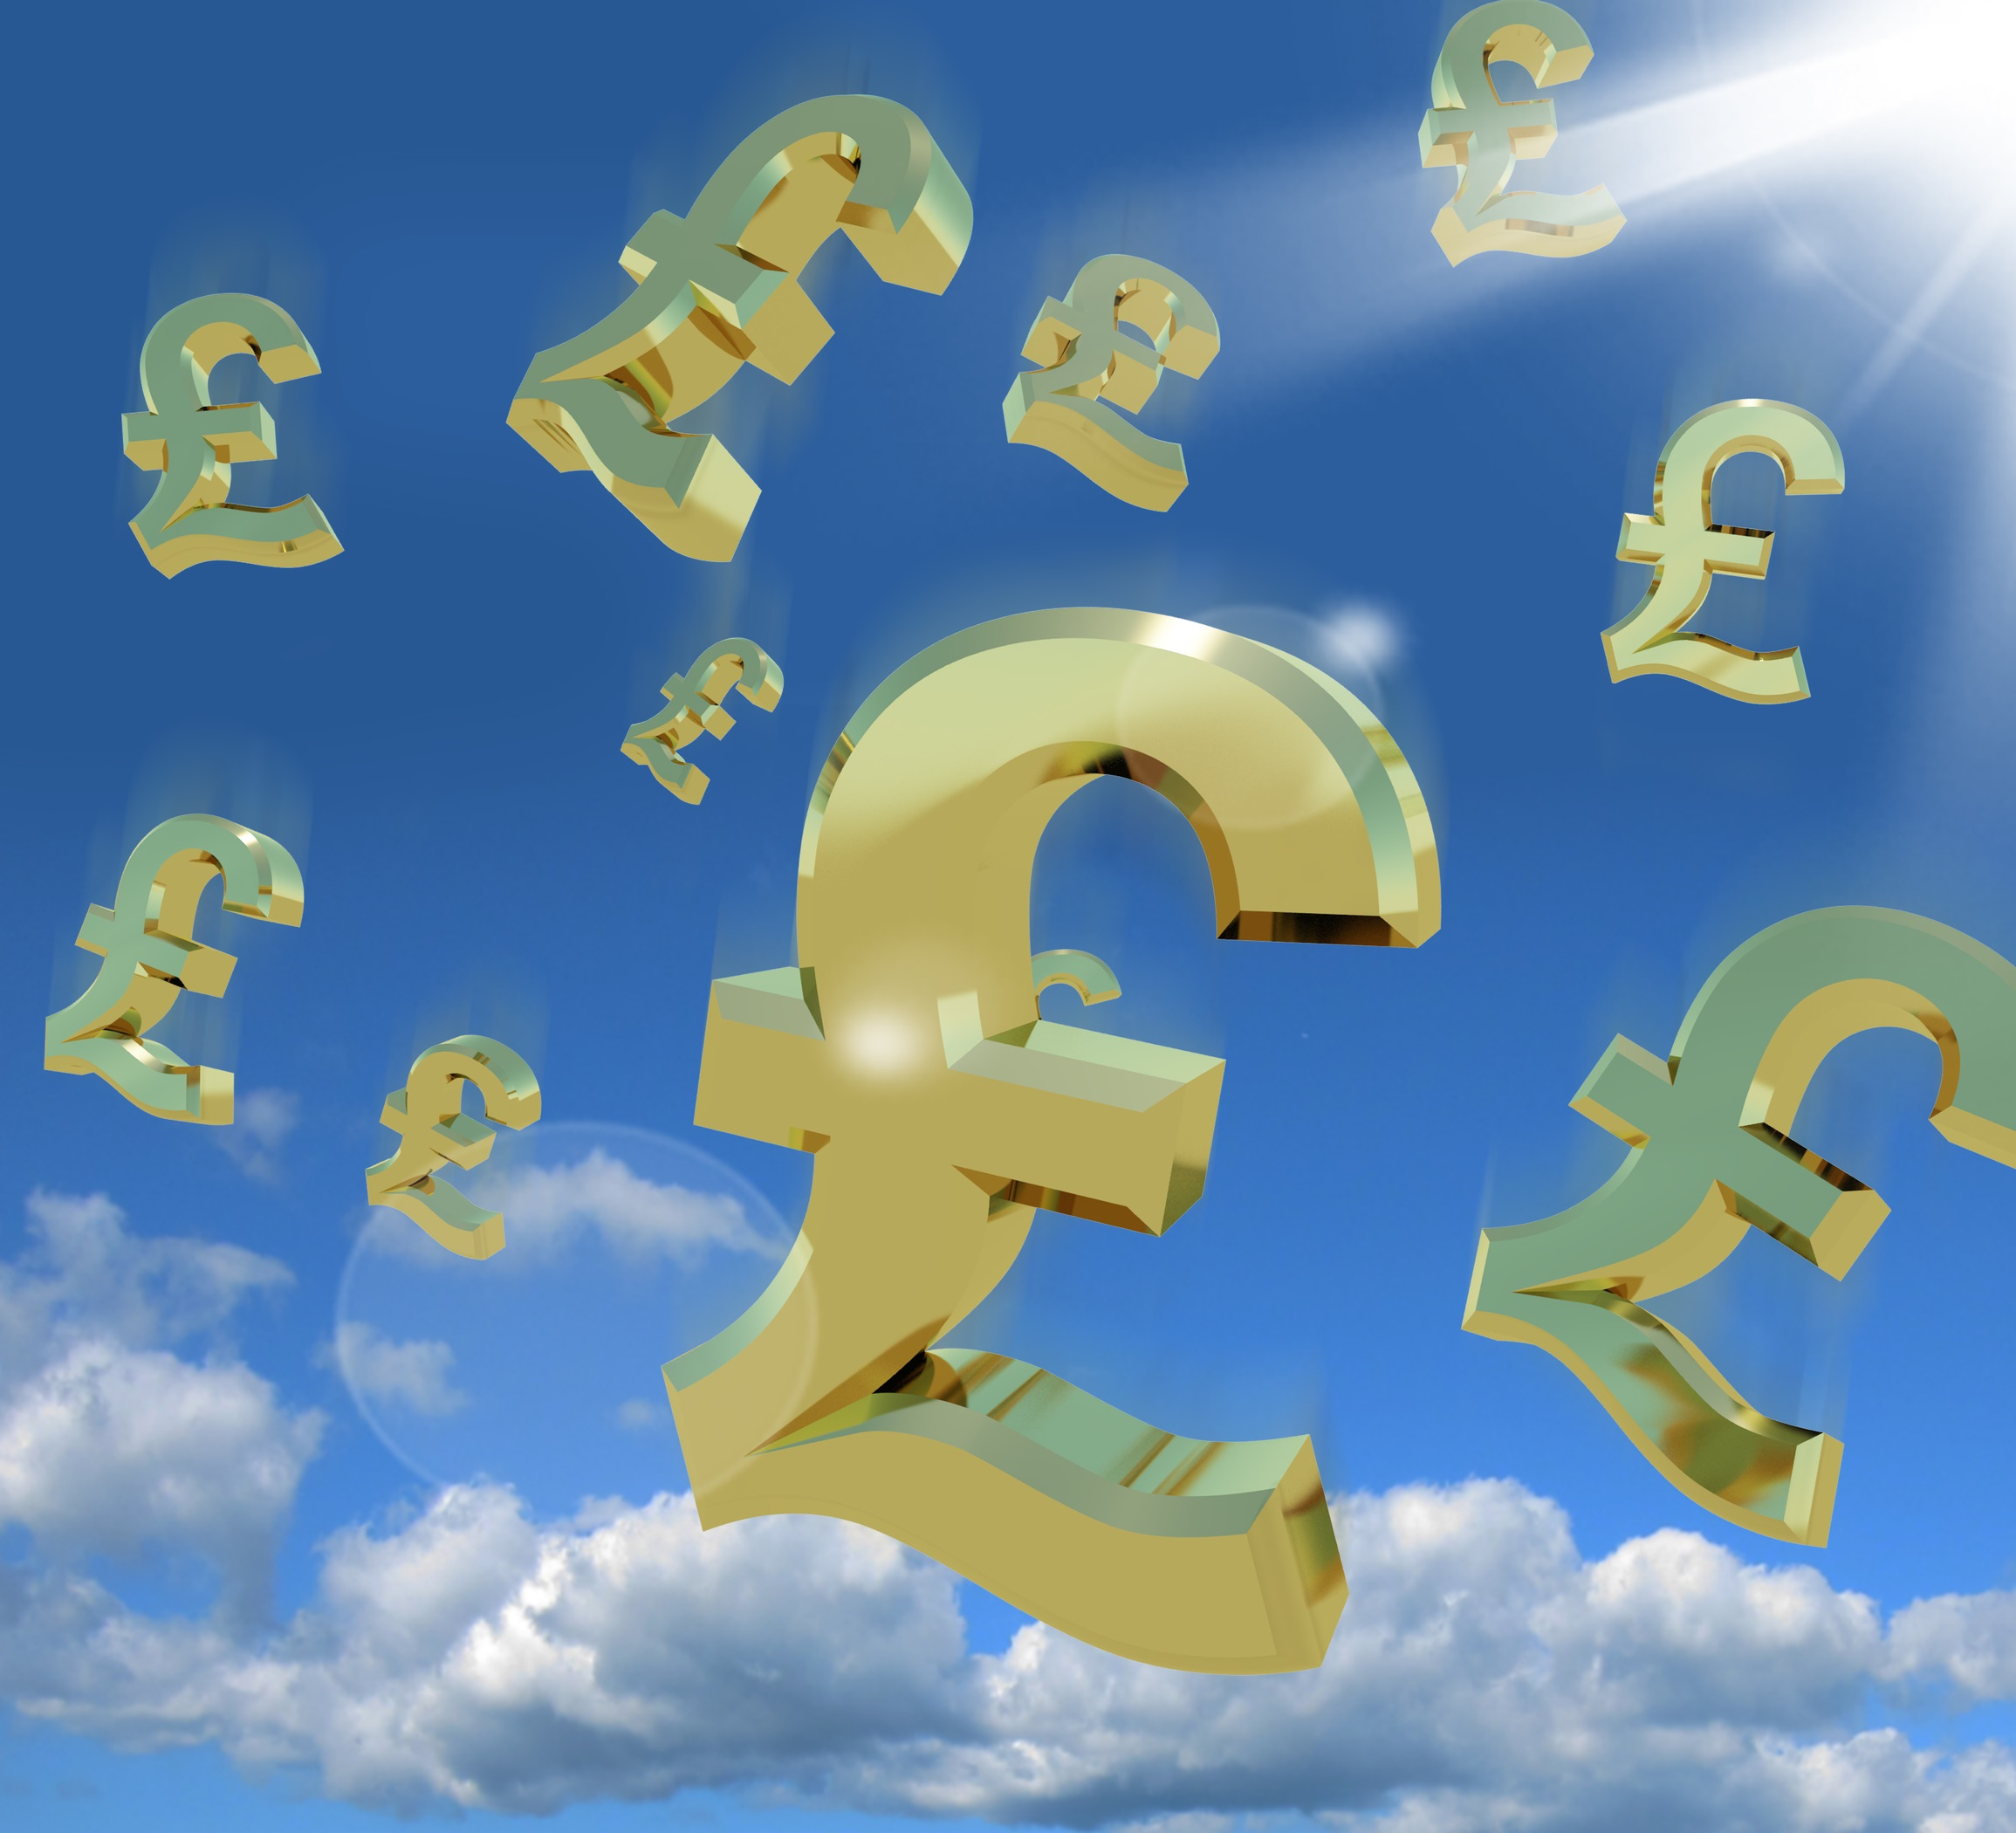 Pound Signs In The Sky As A Sign Of A Windfall